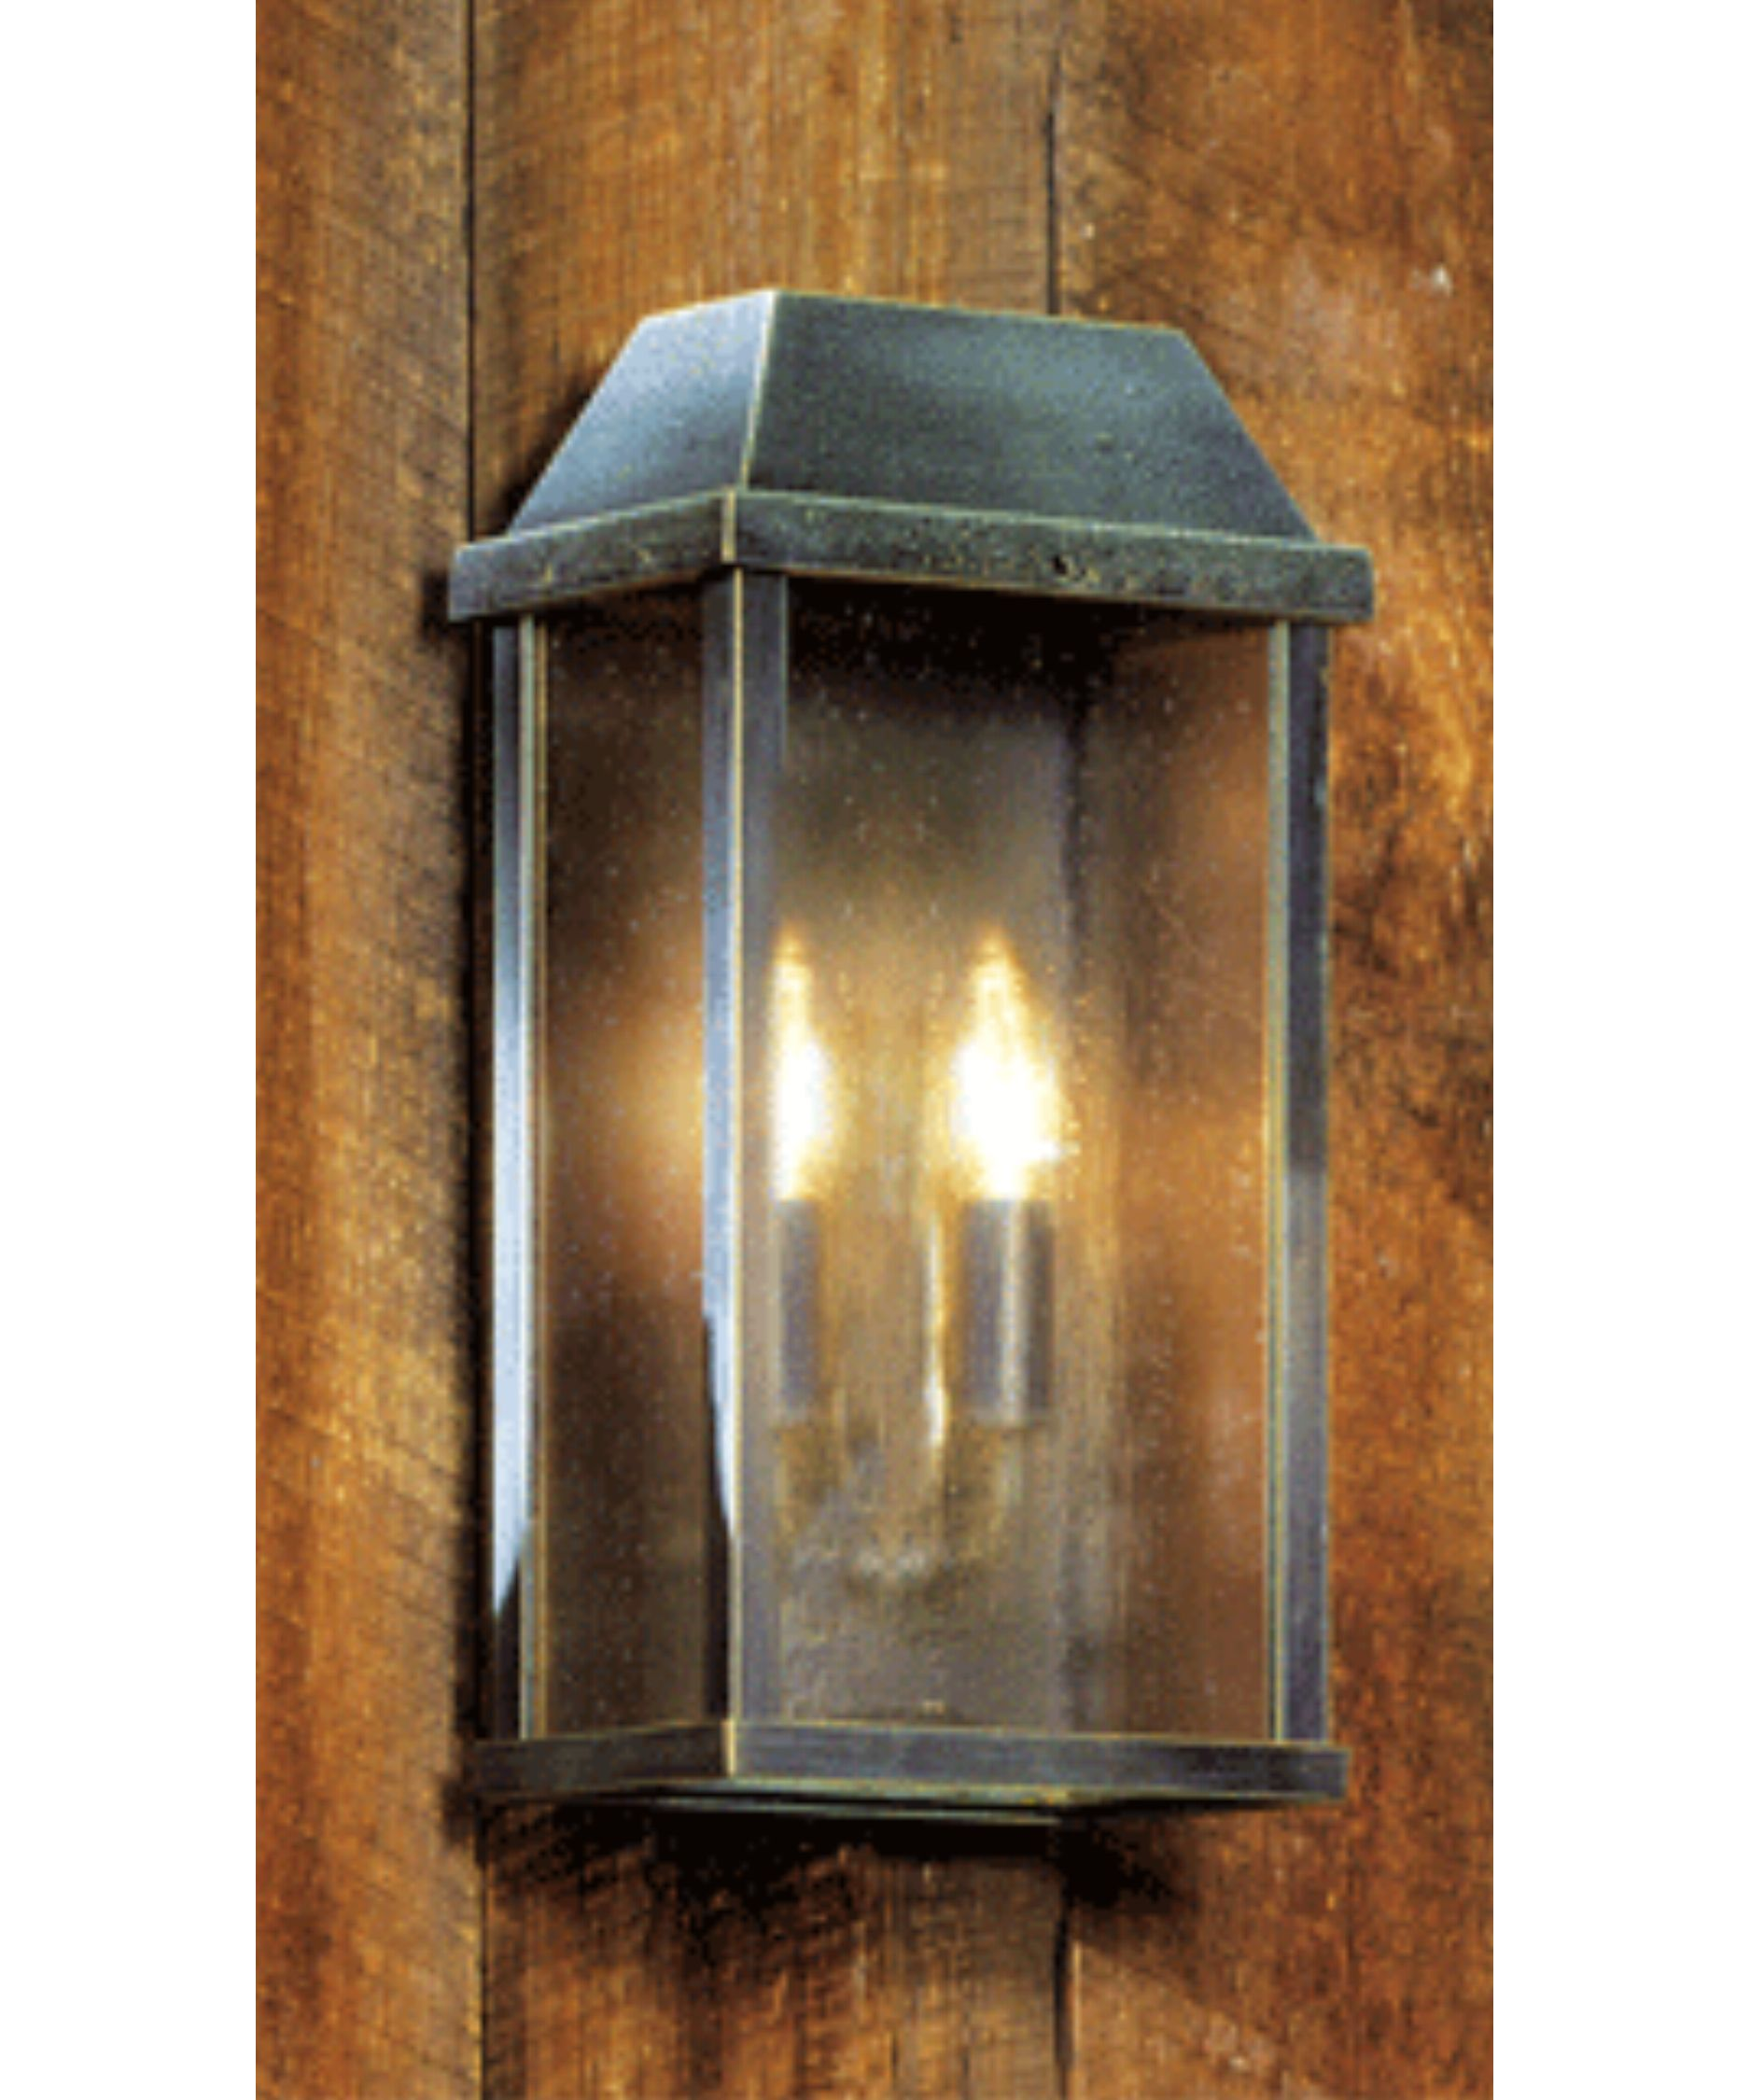 Hanover Lantern B8503 M Large 2 Light Outdoor Wall